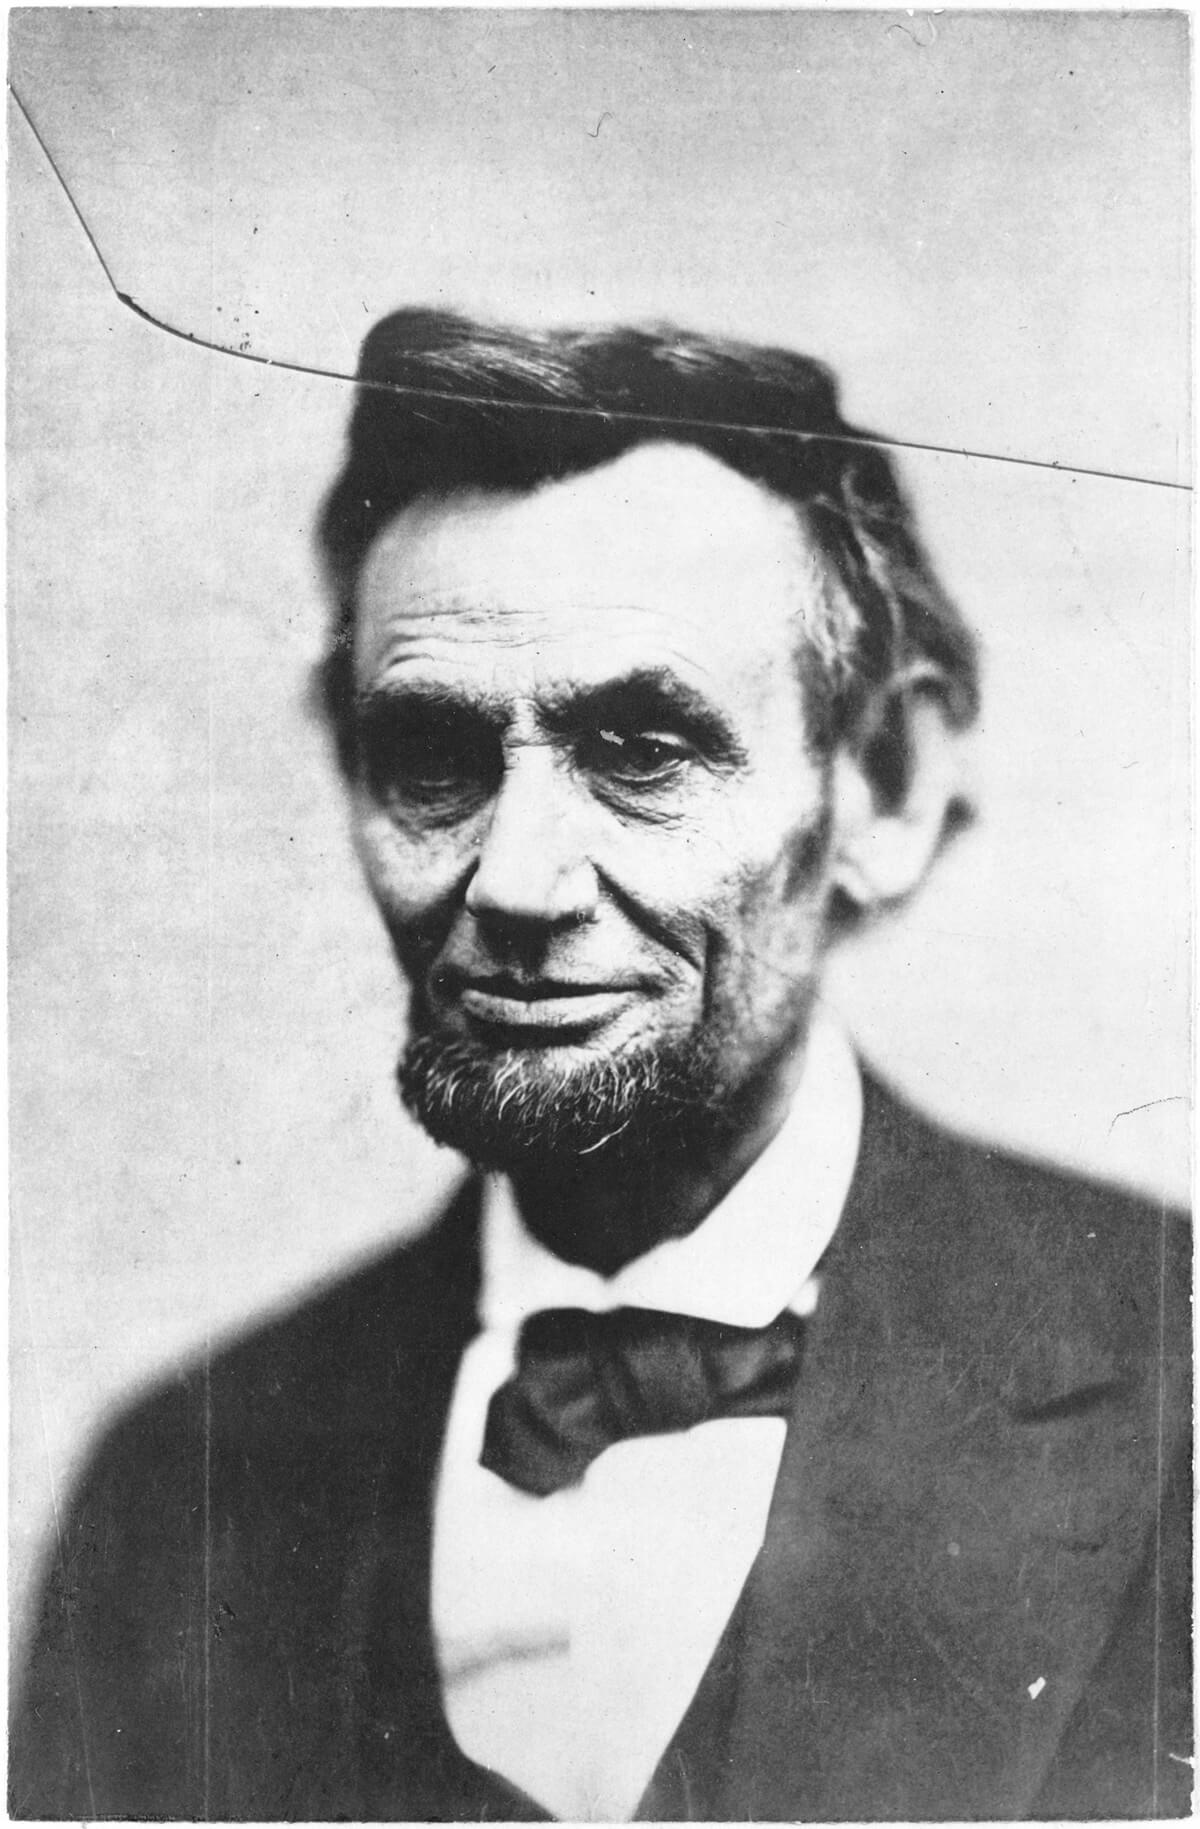 The Last Photograph of Lincoln from Life